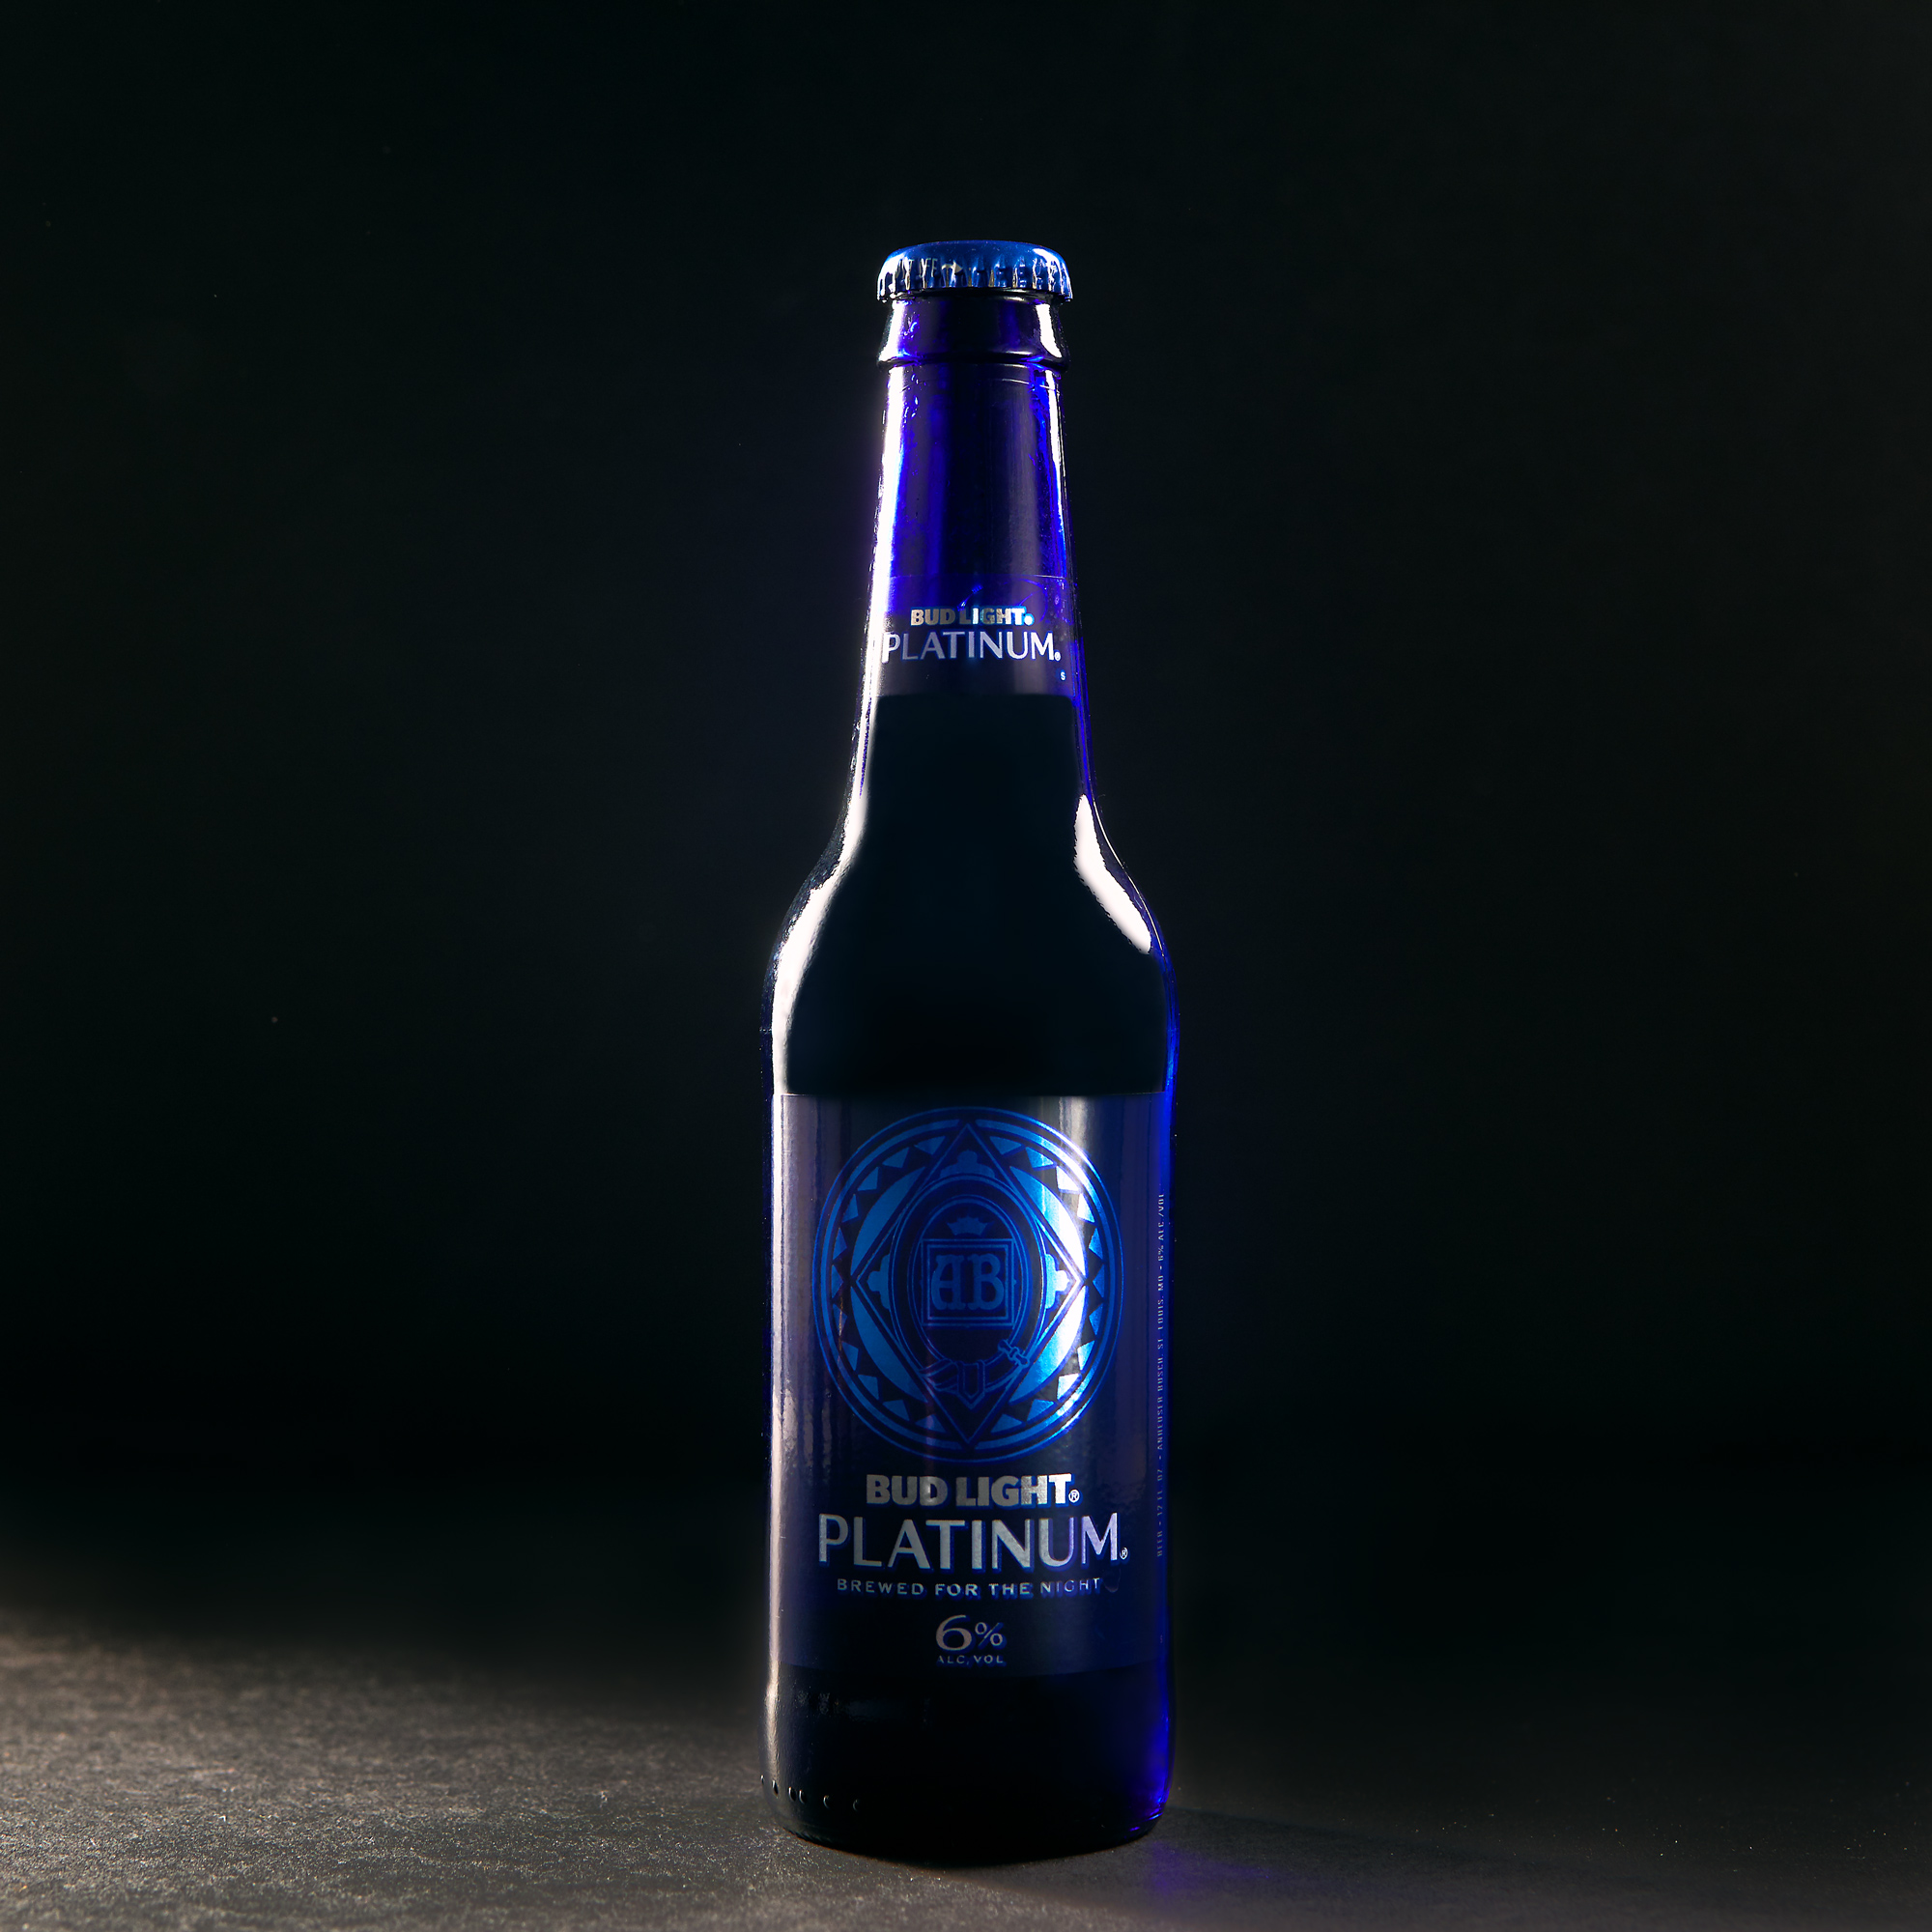 beer-bottle-photography-bud-light-platin